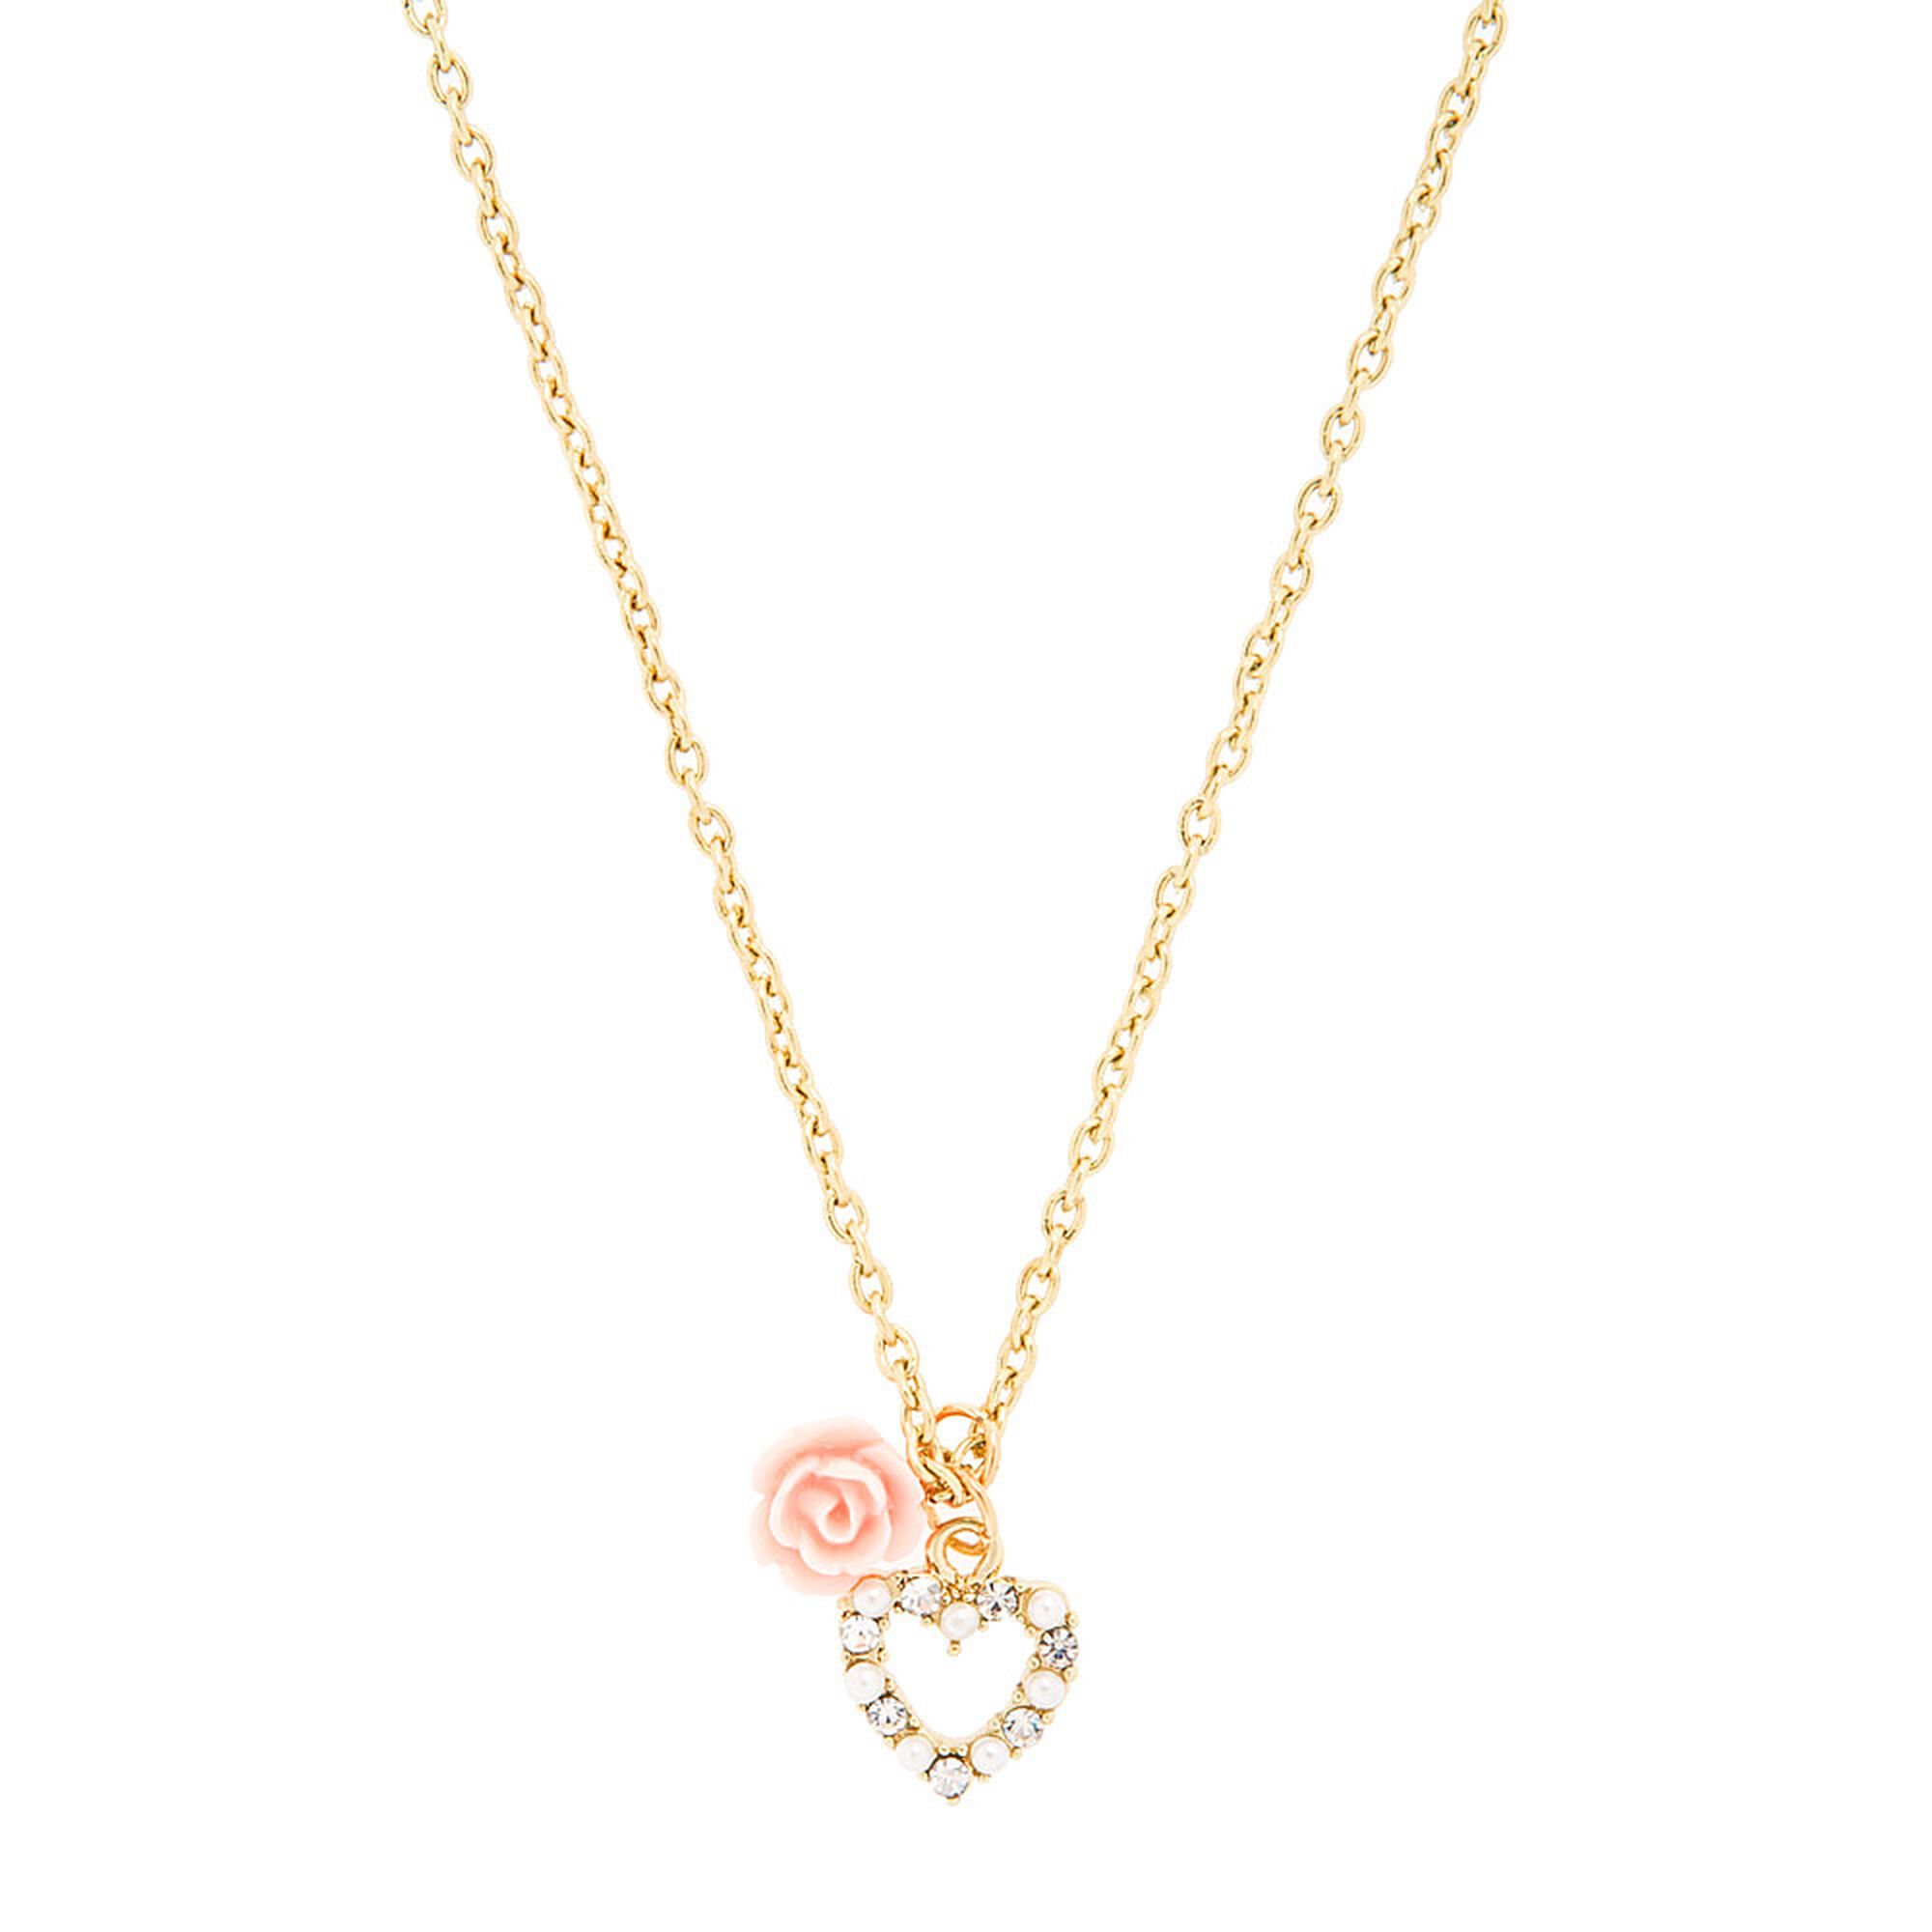 s charm necklace tone rose claire gold